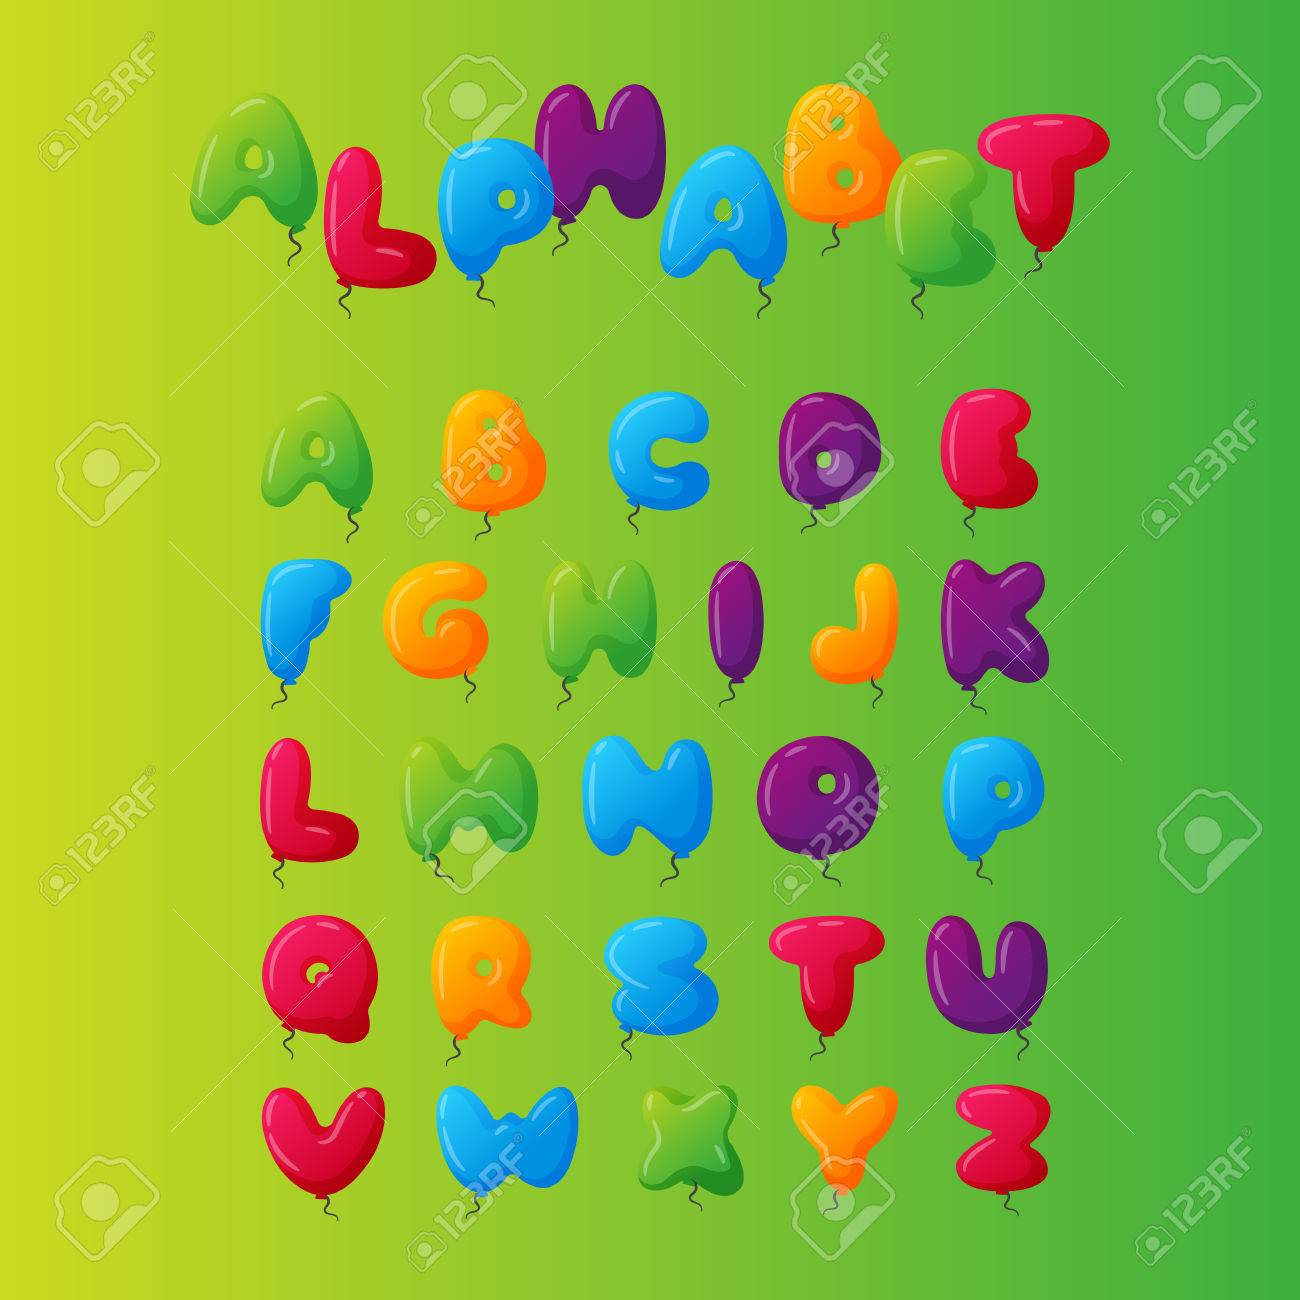 English balloon colorful alphabet on green background holidays english balloon colorful alphabet on green background holidays and education ozone type greeting helium m4hsunfo